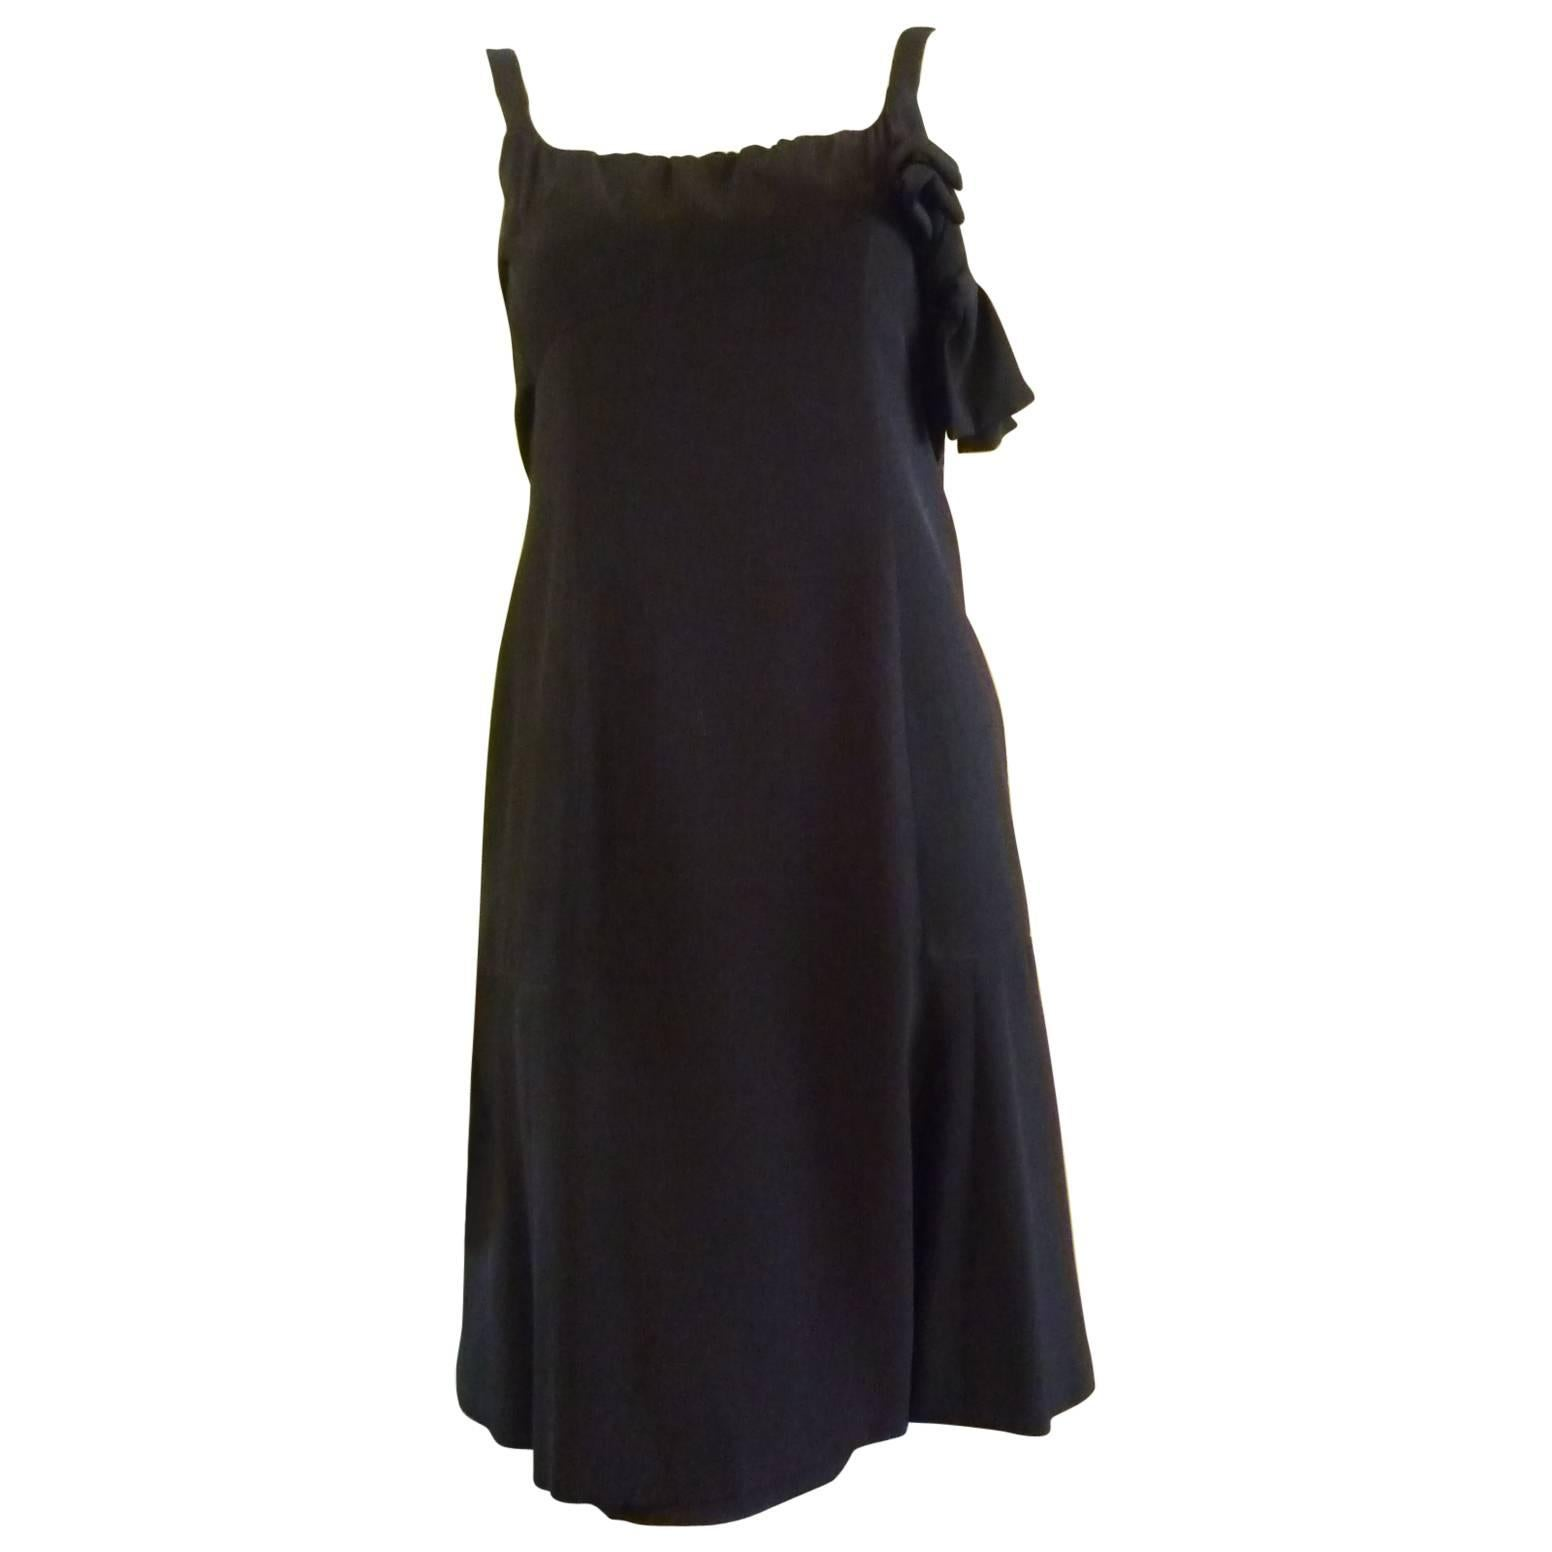 Very Special 1950s Jacques Heim Attributed Black Cocktail Dress with Low Back(S)